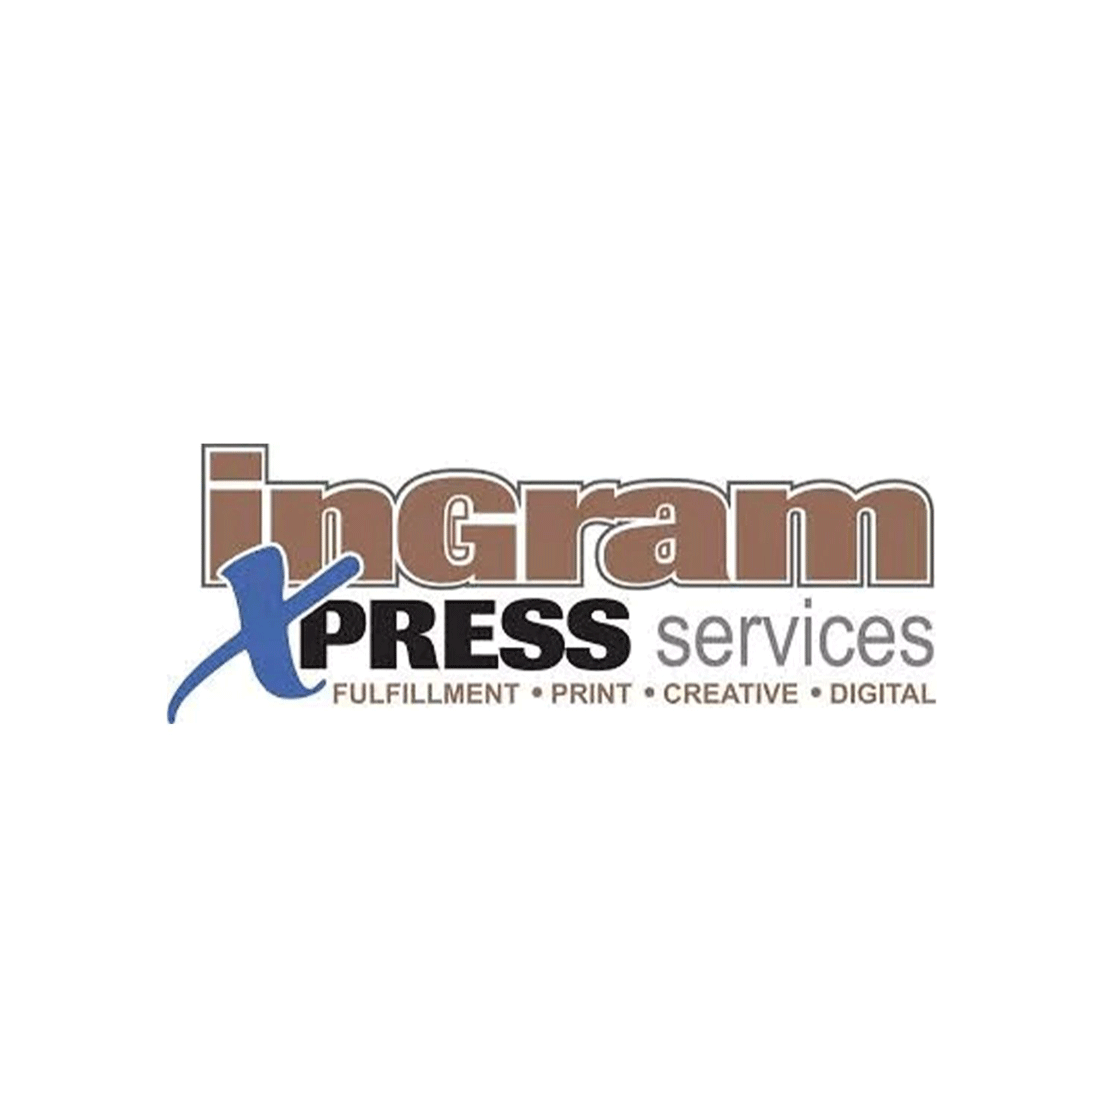 ingram express hire hourly workers